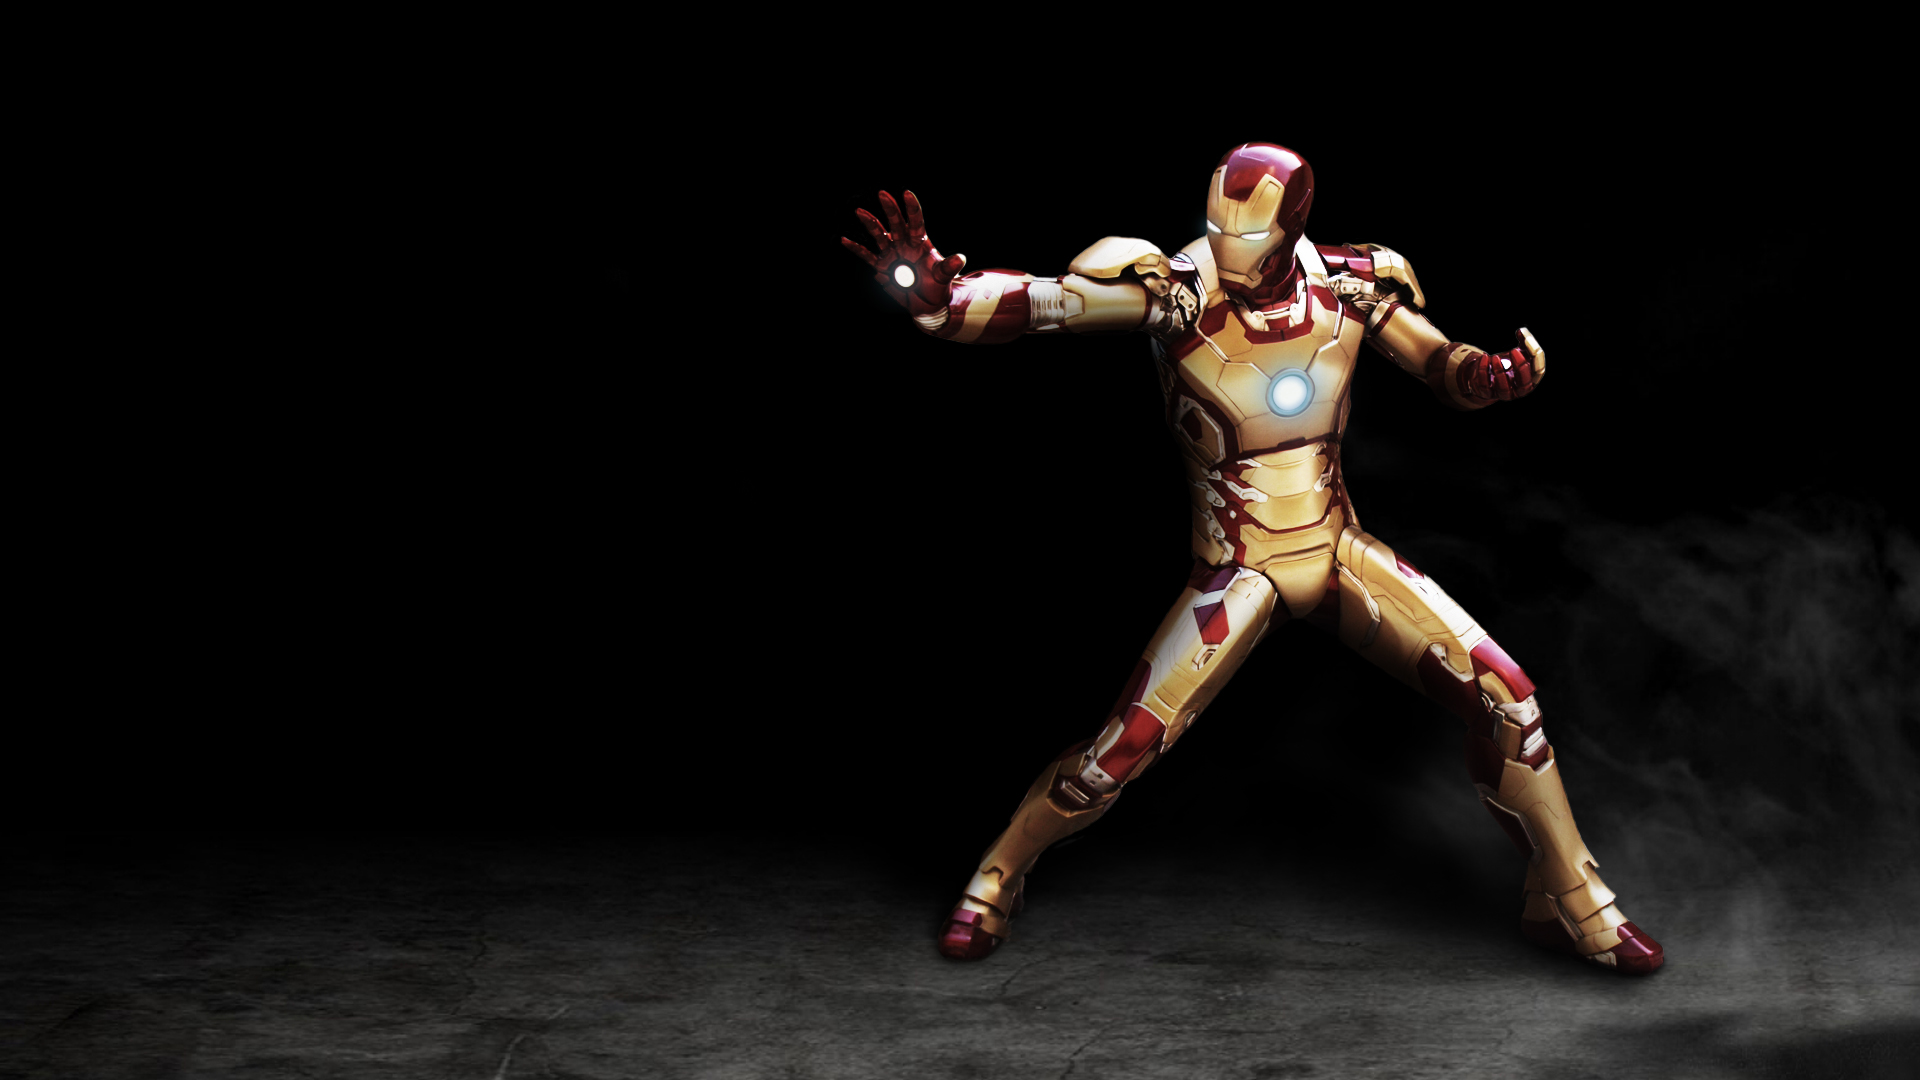 Pics Photos   Dynamic Wallpapers The Best Wallpaper Iron Man 3 1920x1080